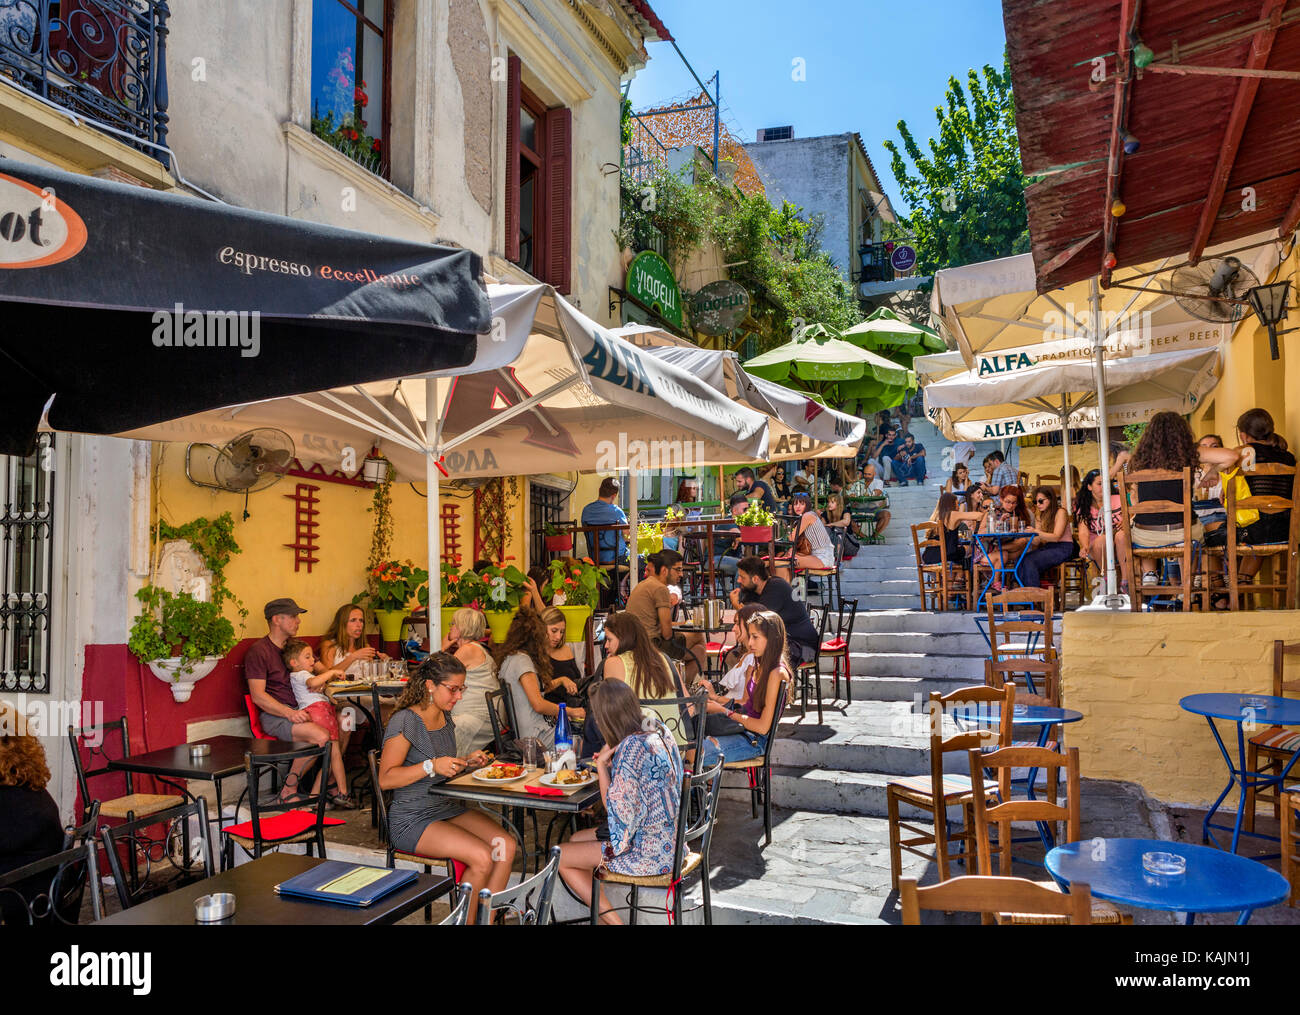 Cafes and tavernas on Mnisikleous Street in the Plaka district, Athens, Greece - Stock Image